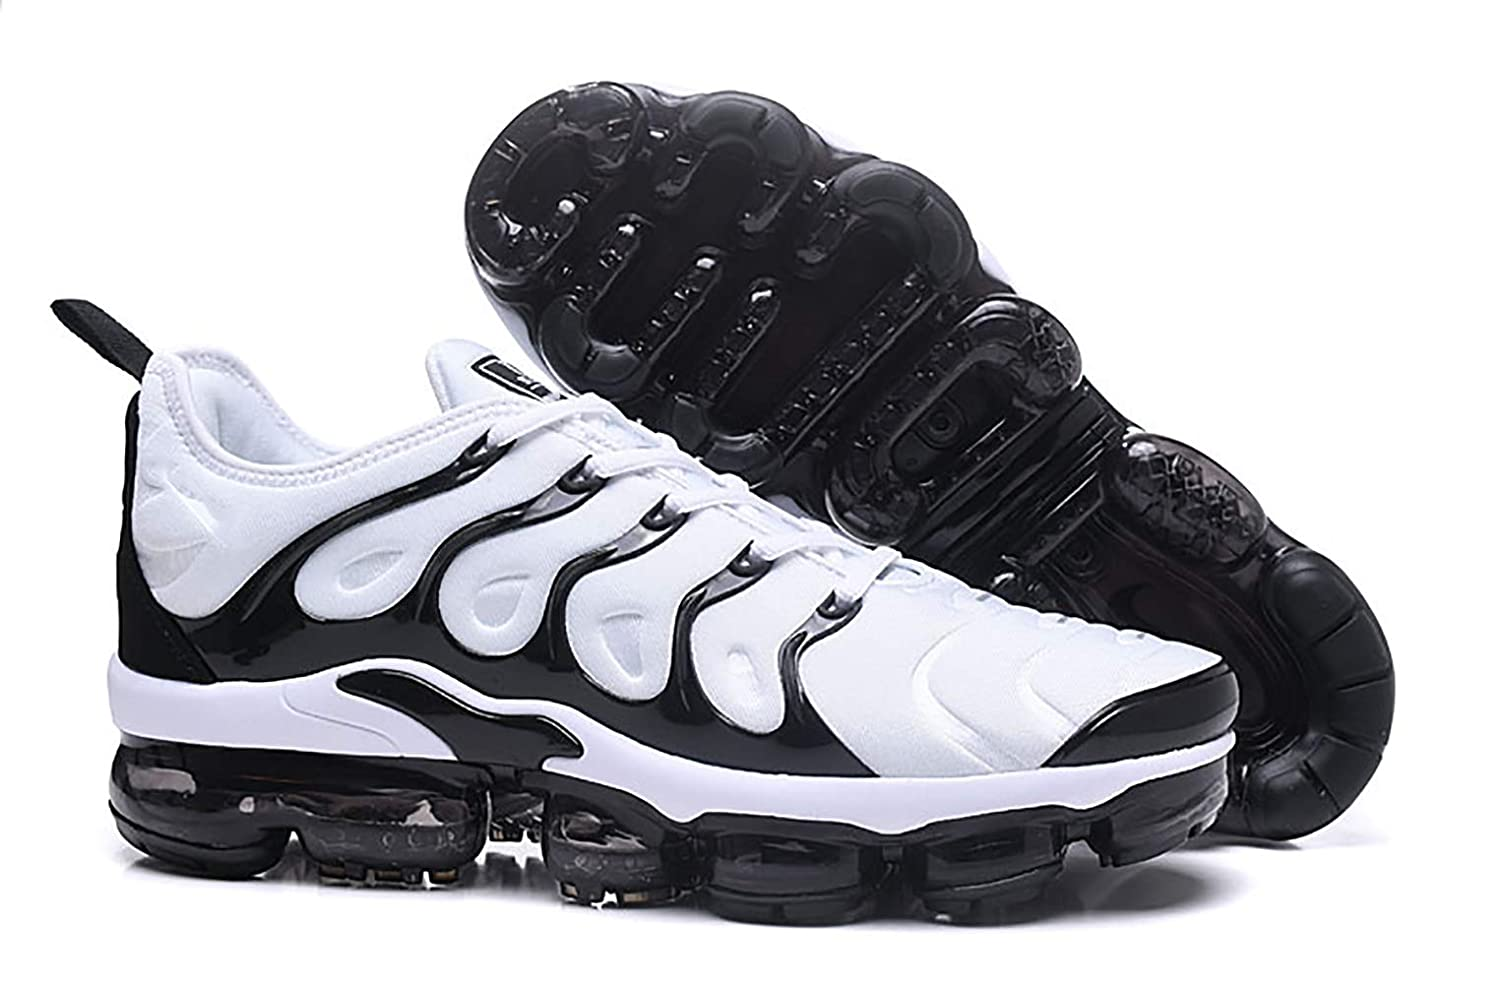 f27860992f Amazon.com | RUNSHOT Men's Air Vapormax Plus TN Running Shoe Basketball  Shoes -White and Black Stripes | Basketball